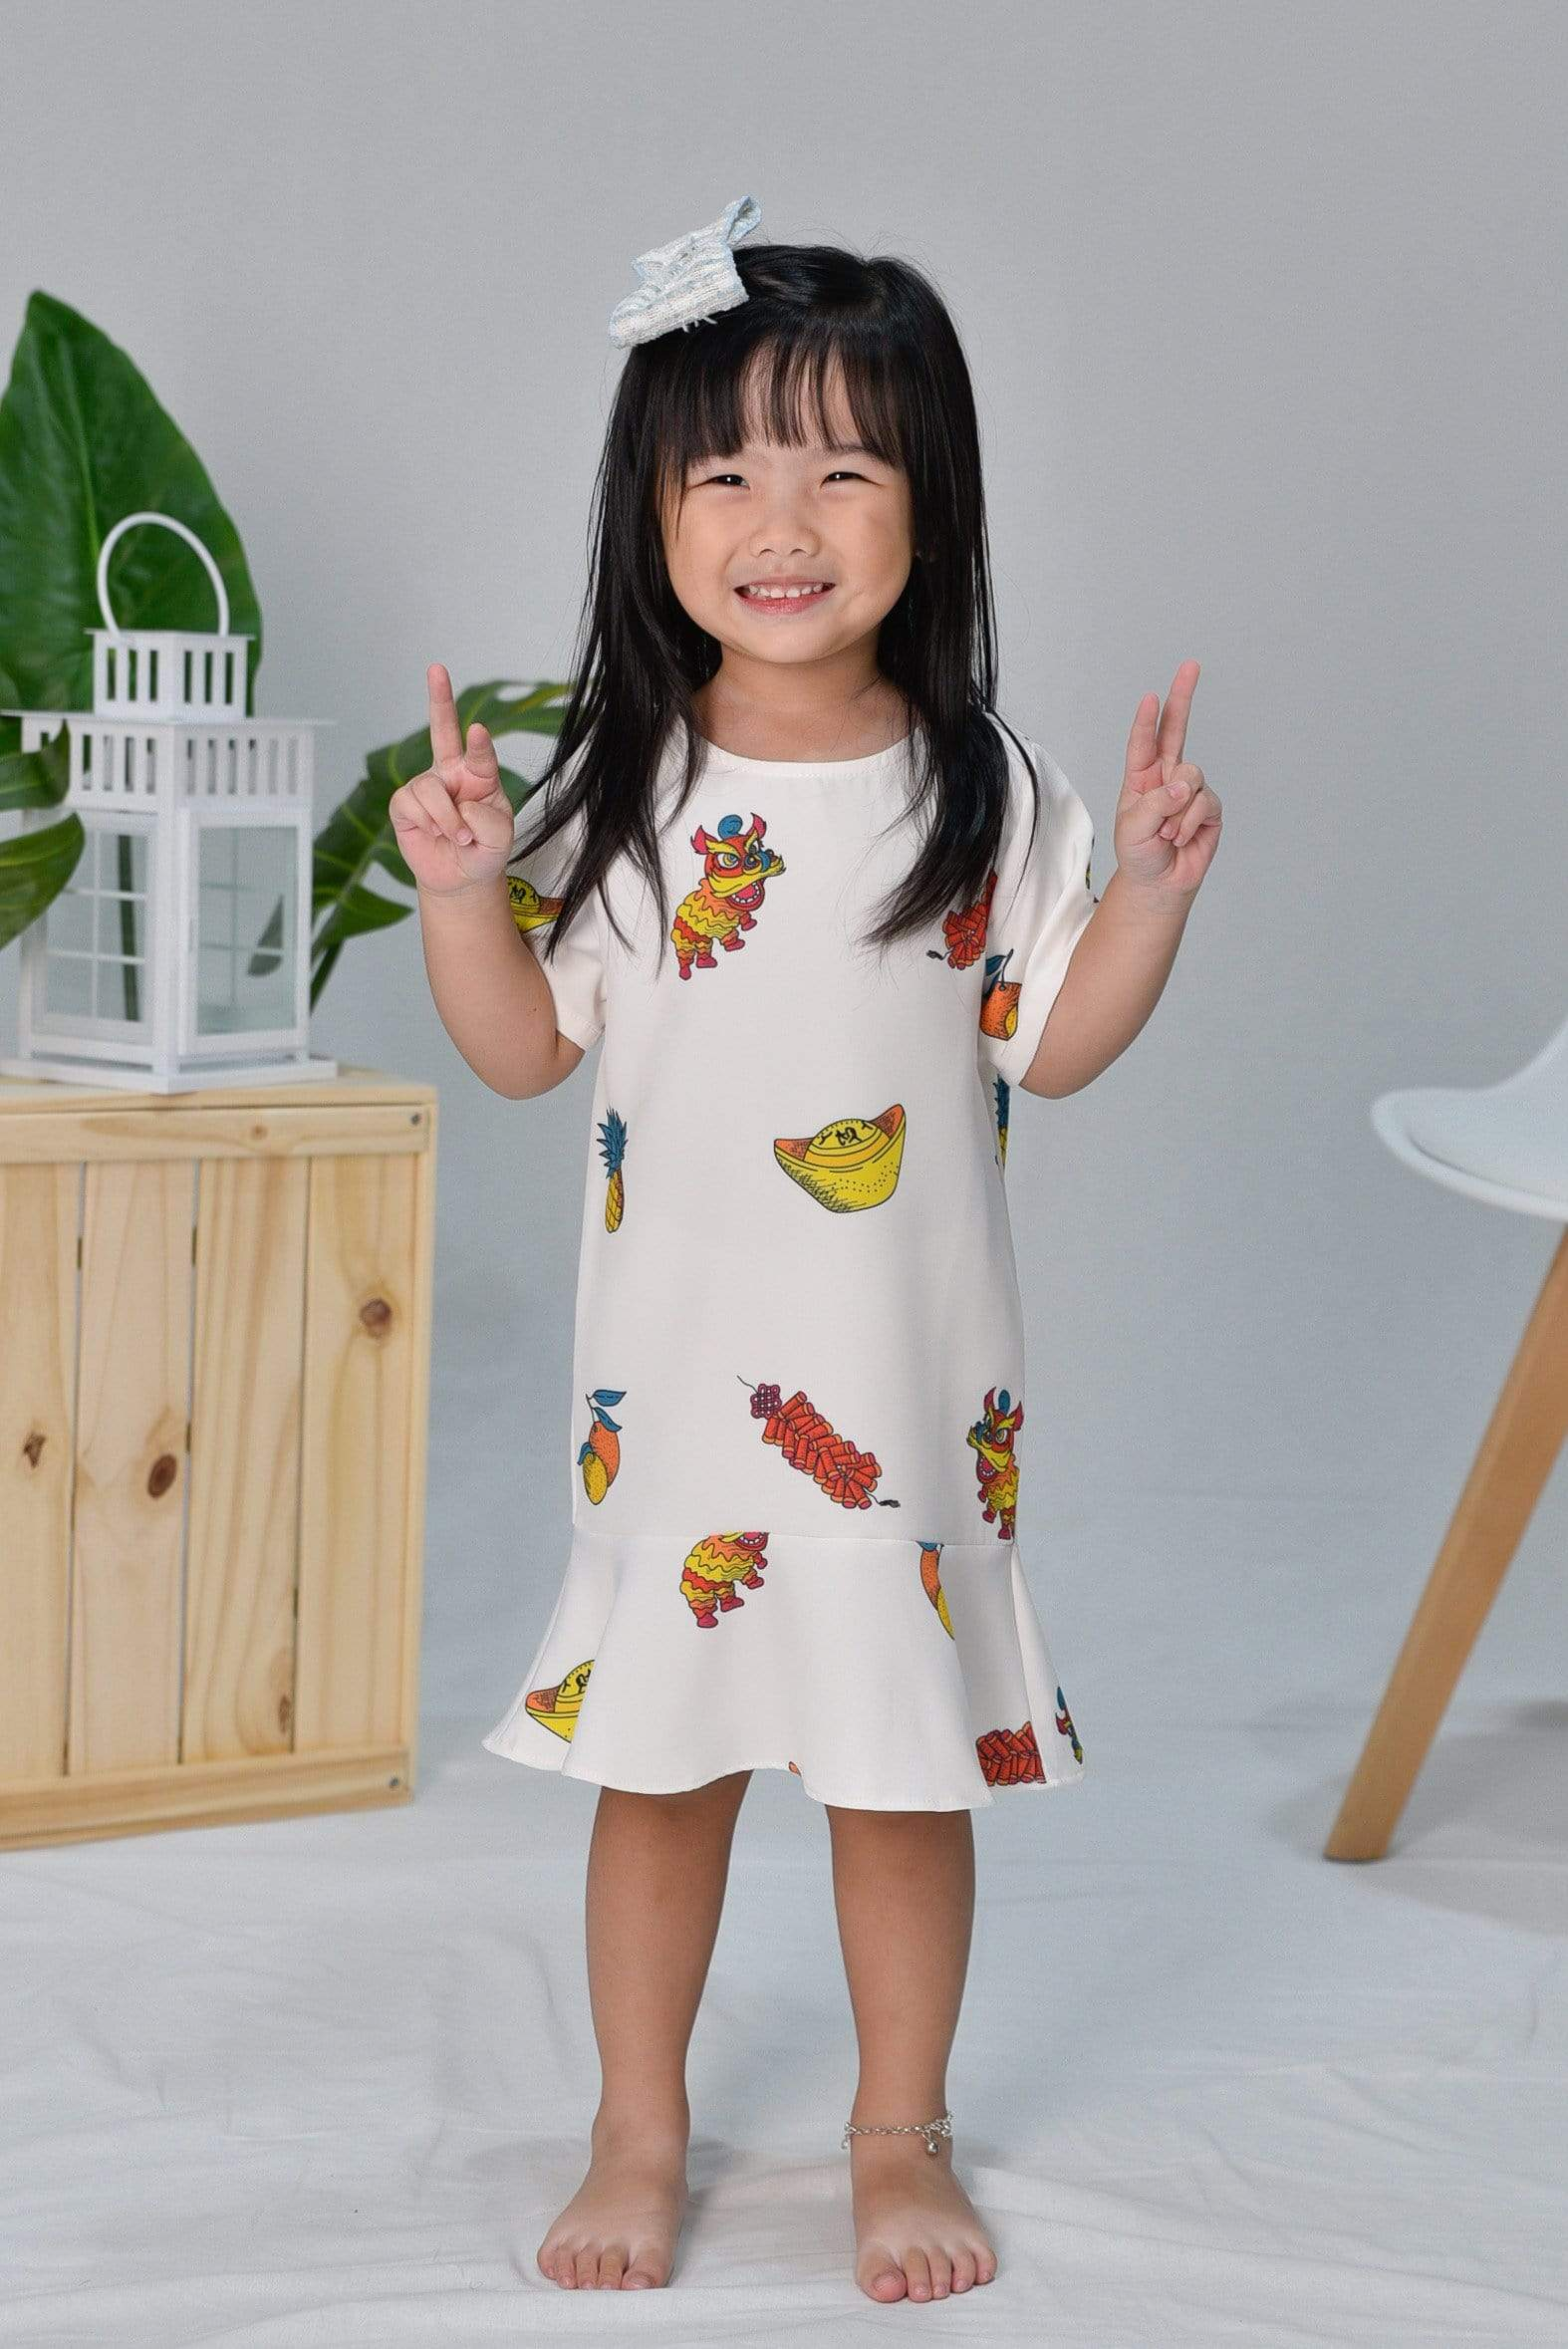 *RESTOCKED* CNY KIDS SLEEVED DRESS IN OFF-WHITE